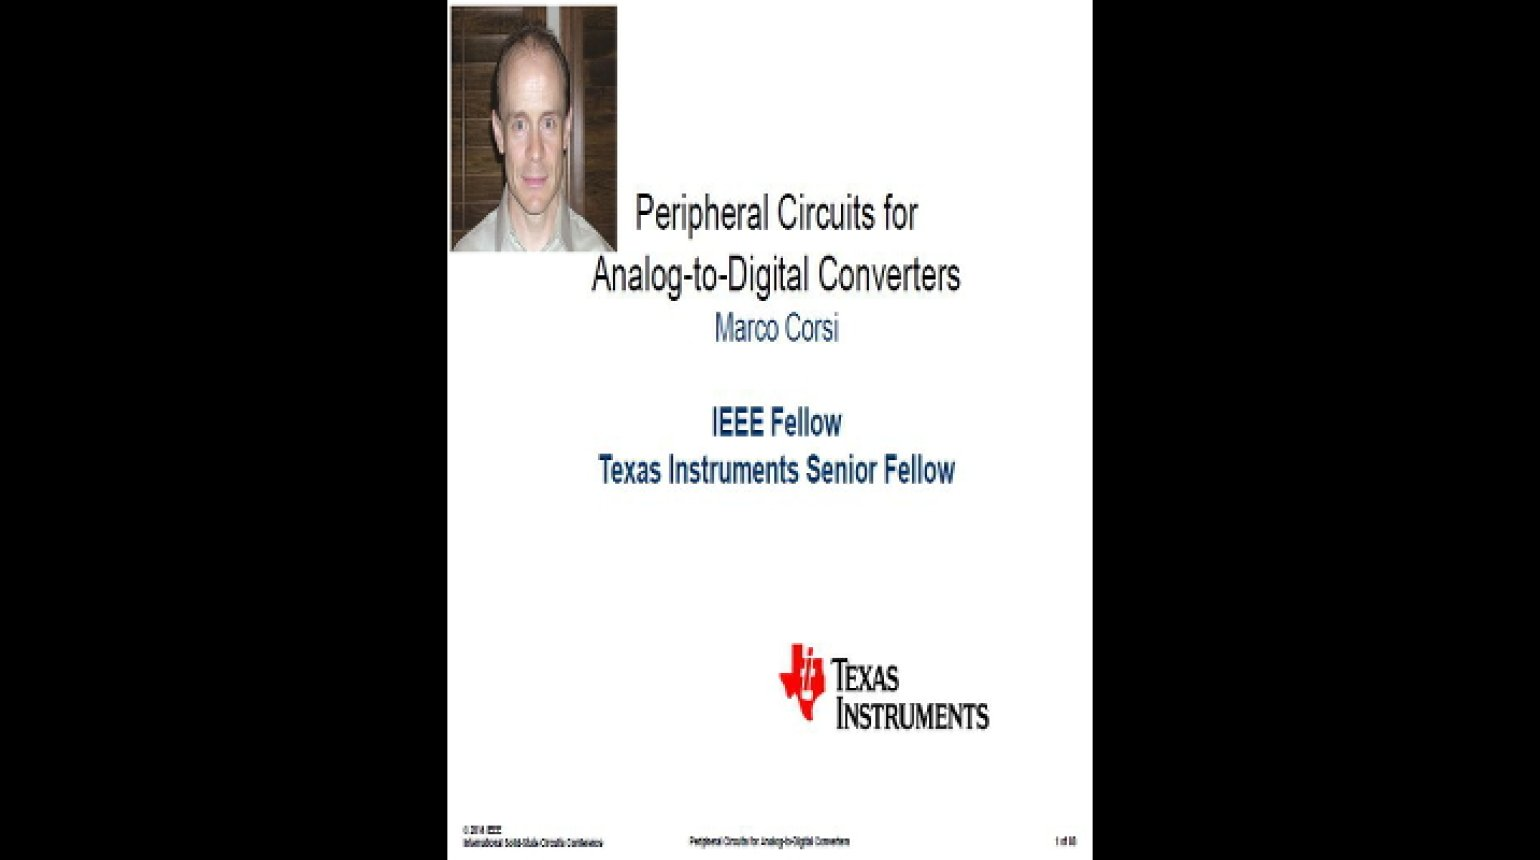 Peripheral Circuits for Analog-to-Digital Converters Video